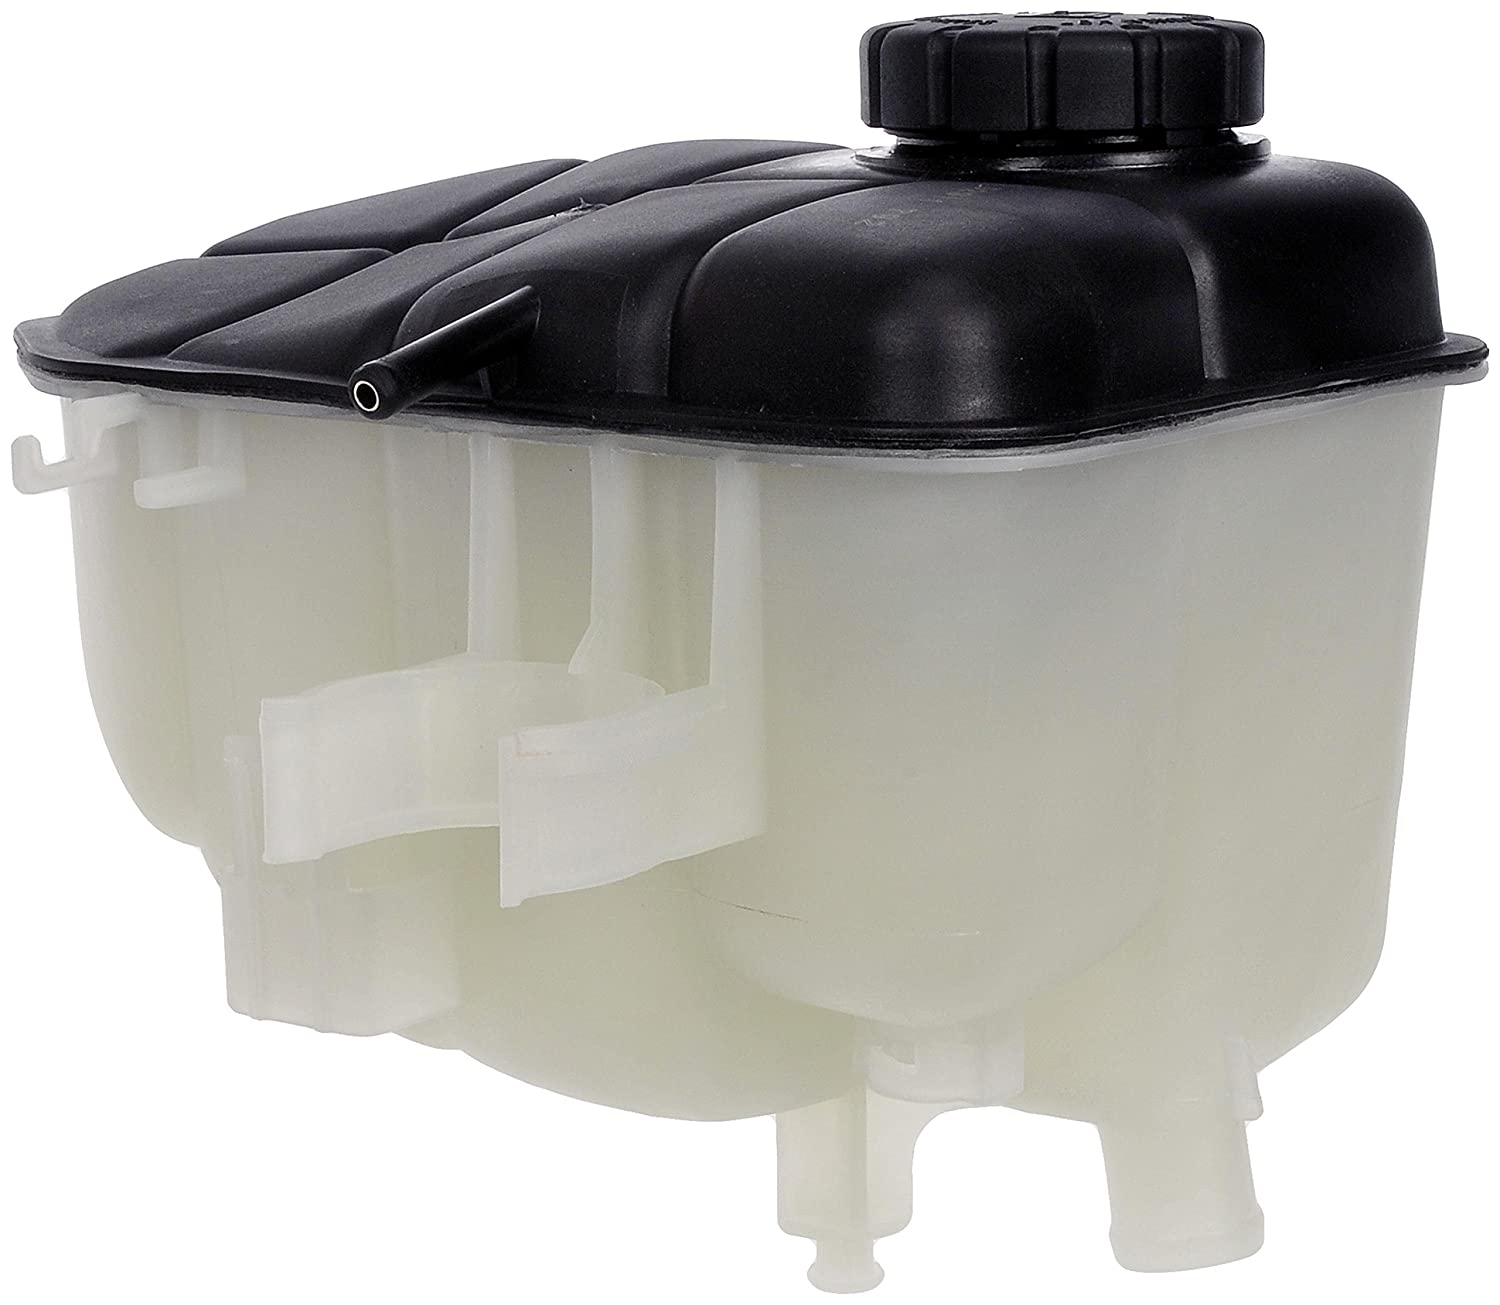 Dorman 603-284 Pressurized Coolant Reservoir